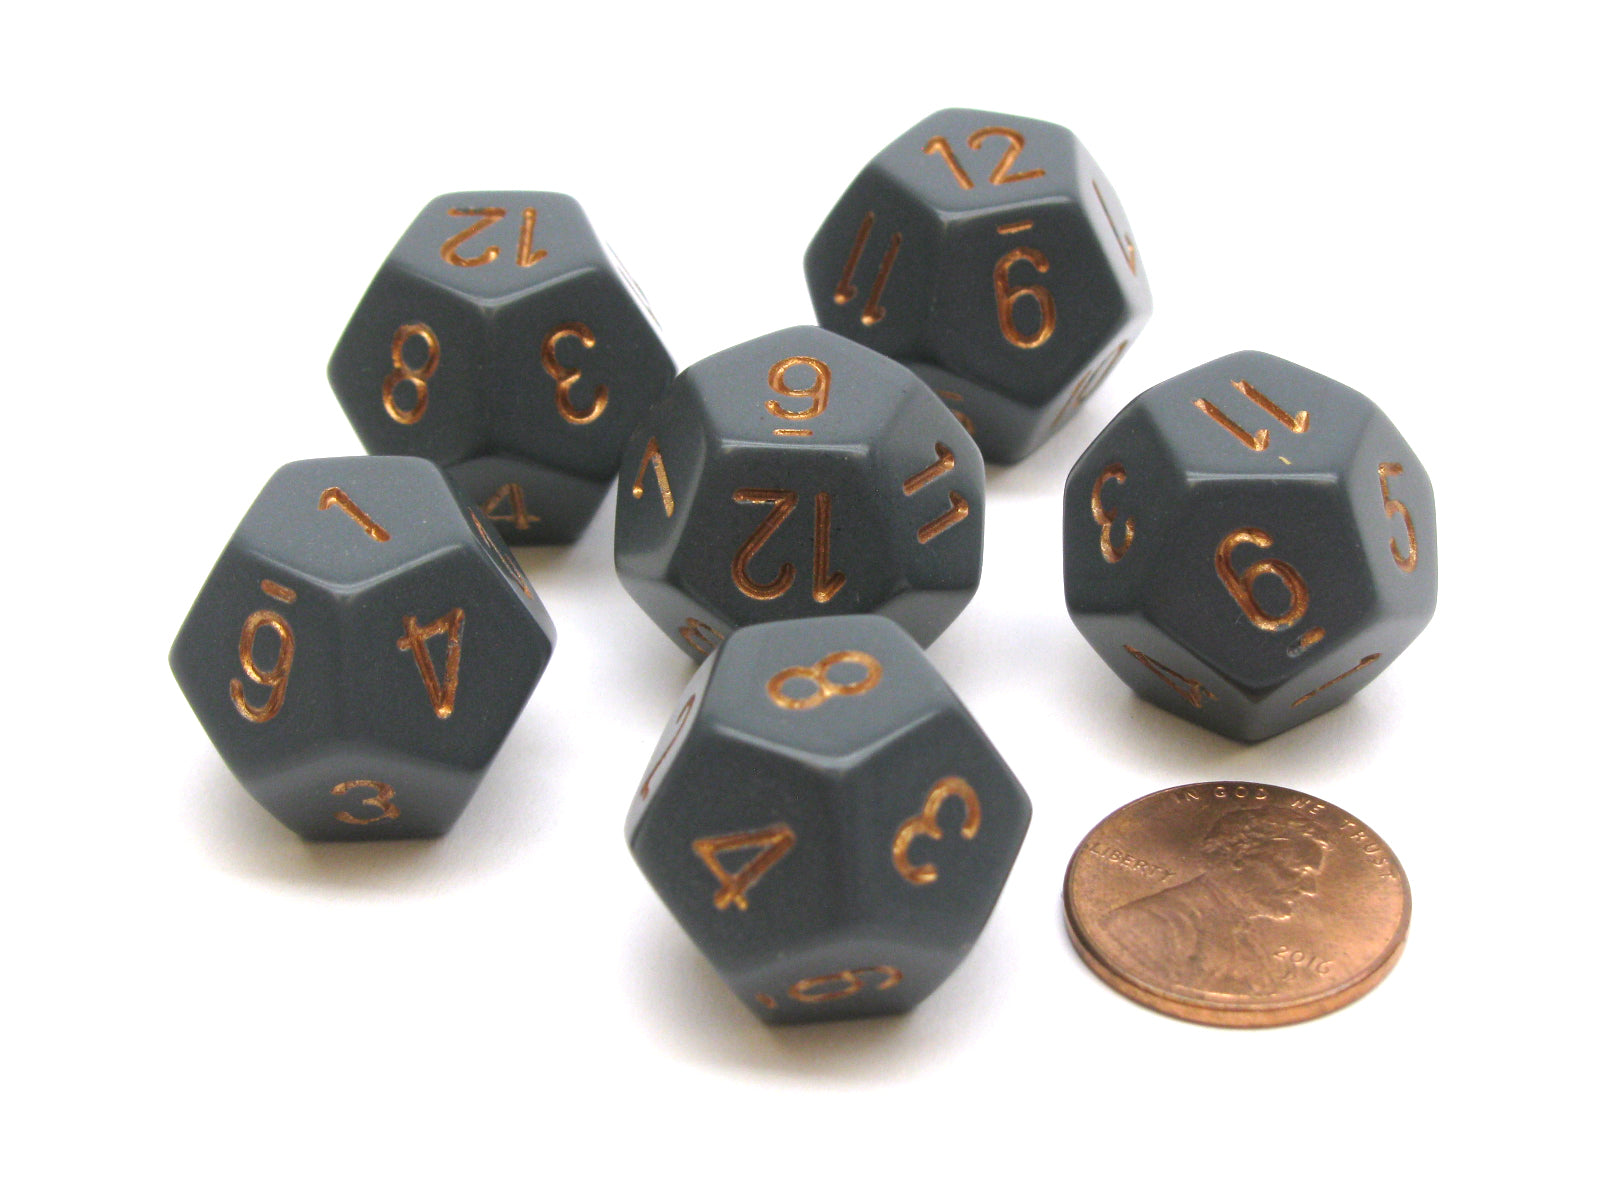 Opaque 18mm 12 Sided D12 Chessex Dice, 6 Pieces -  Dark Grey with Copper